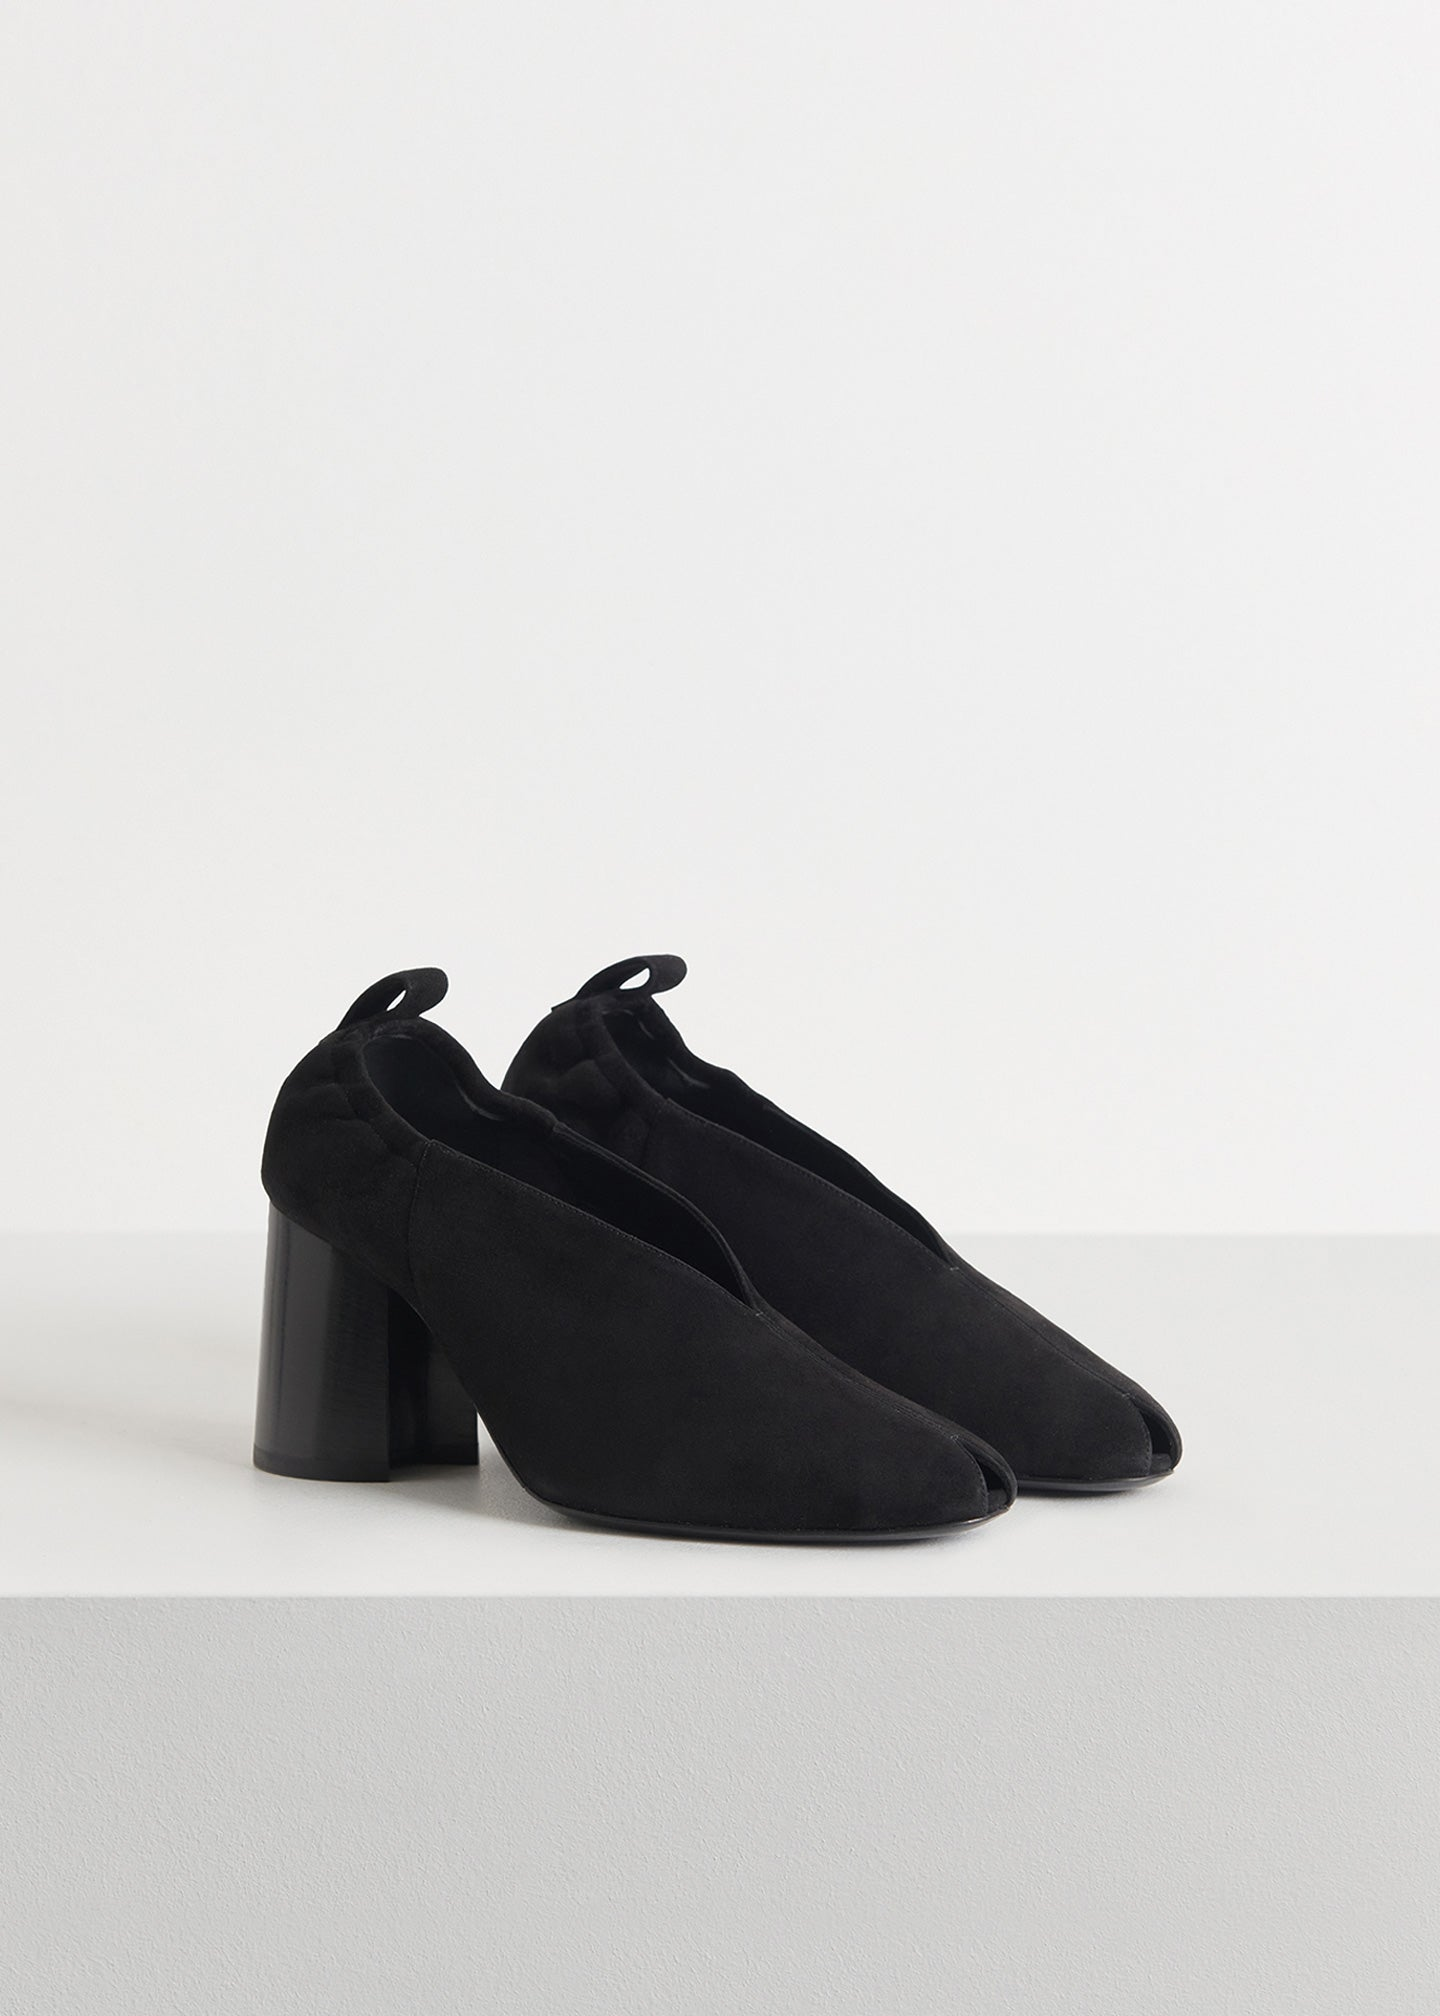 CO - Slit Heel in Suede - Black